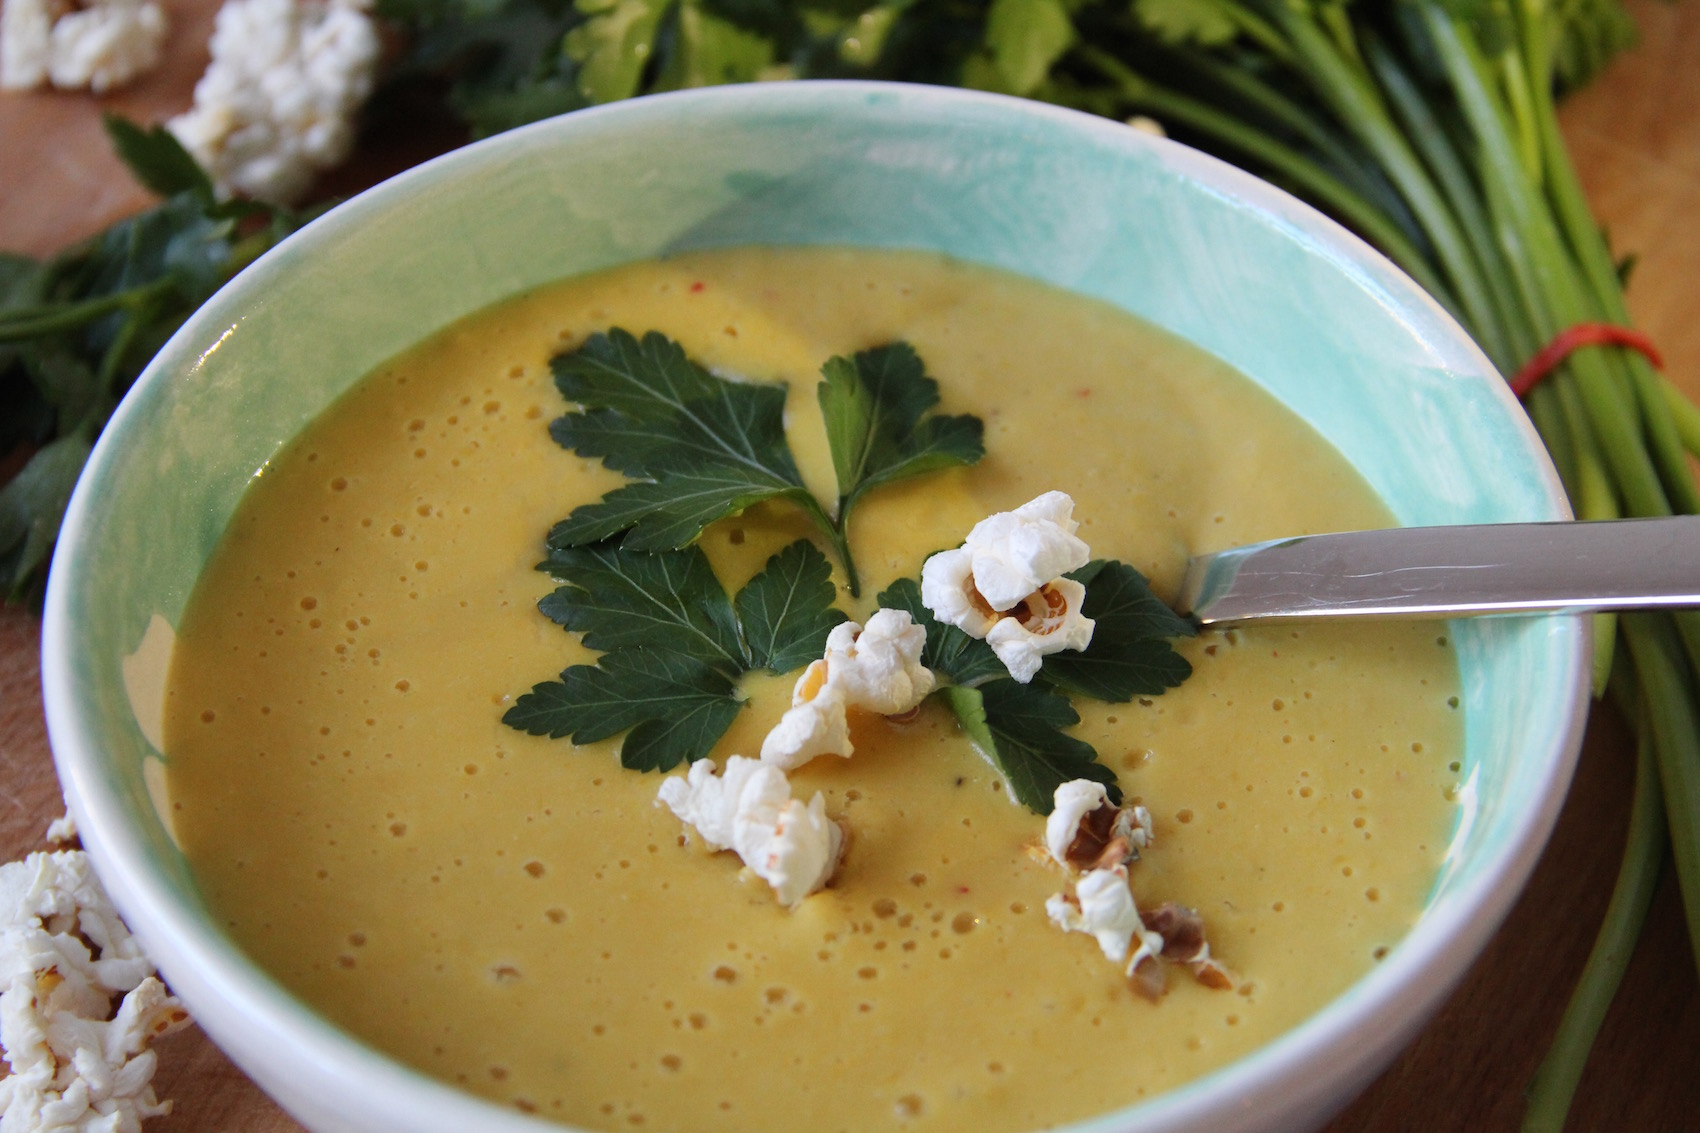 Scharfe, cremige Maissuppe mit Popcorn-Topping